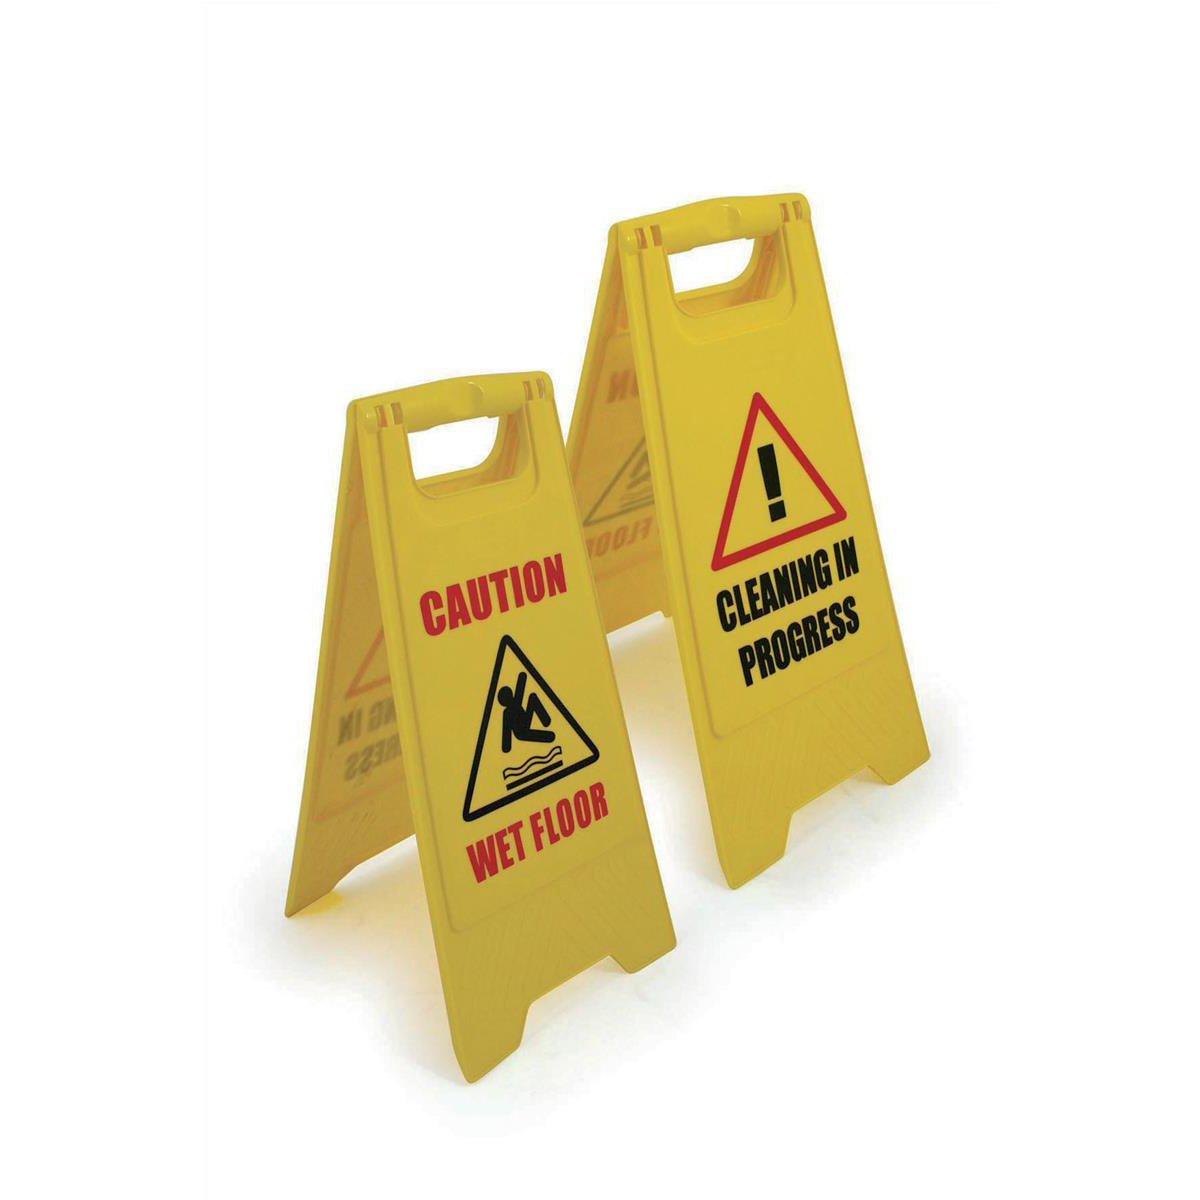 Advice Single A Frame Sign 2 Sided 2 Messages Caution Wet Floor/Cleaning in Progress Yellow